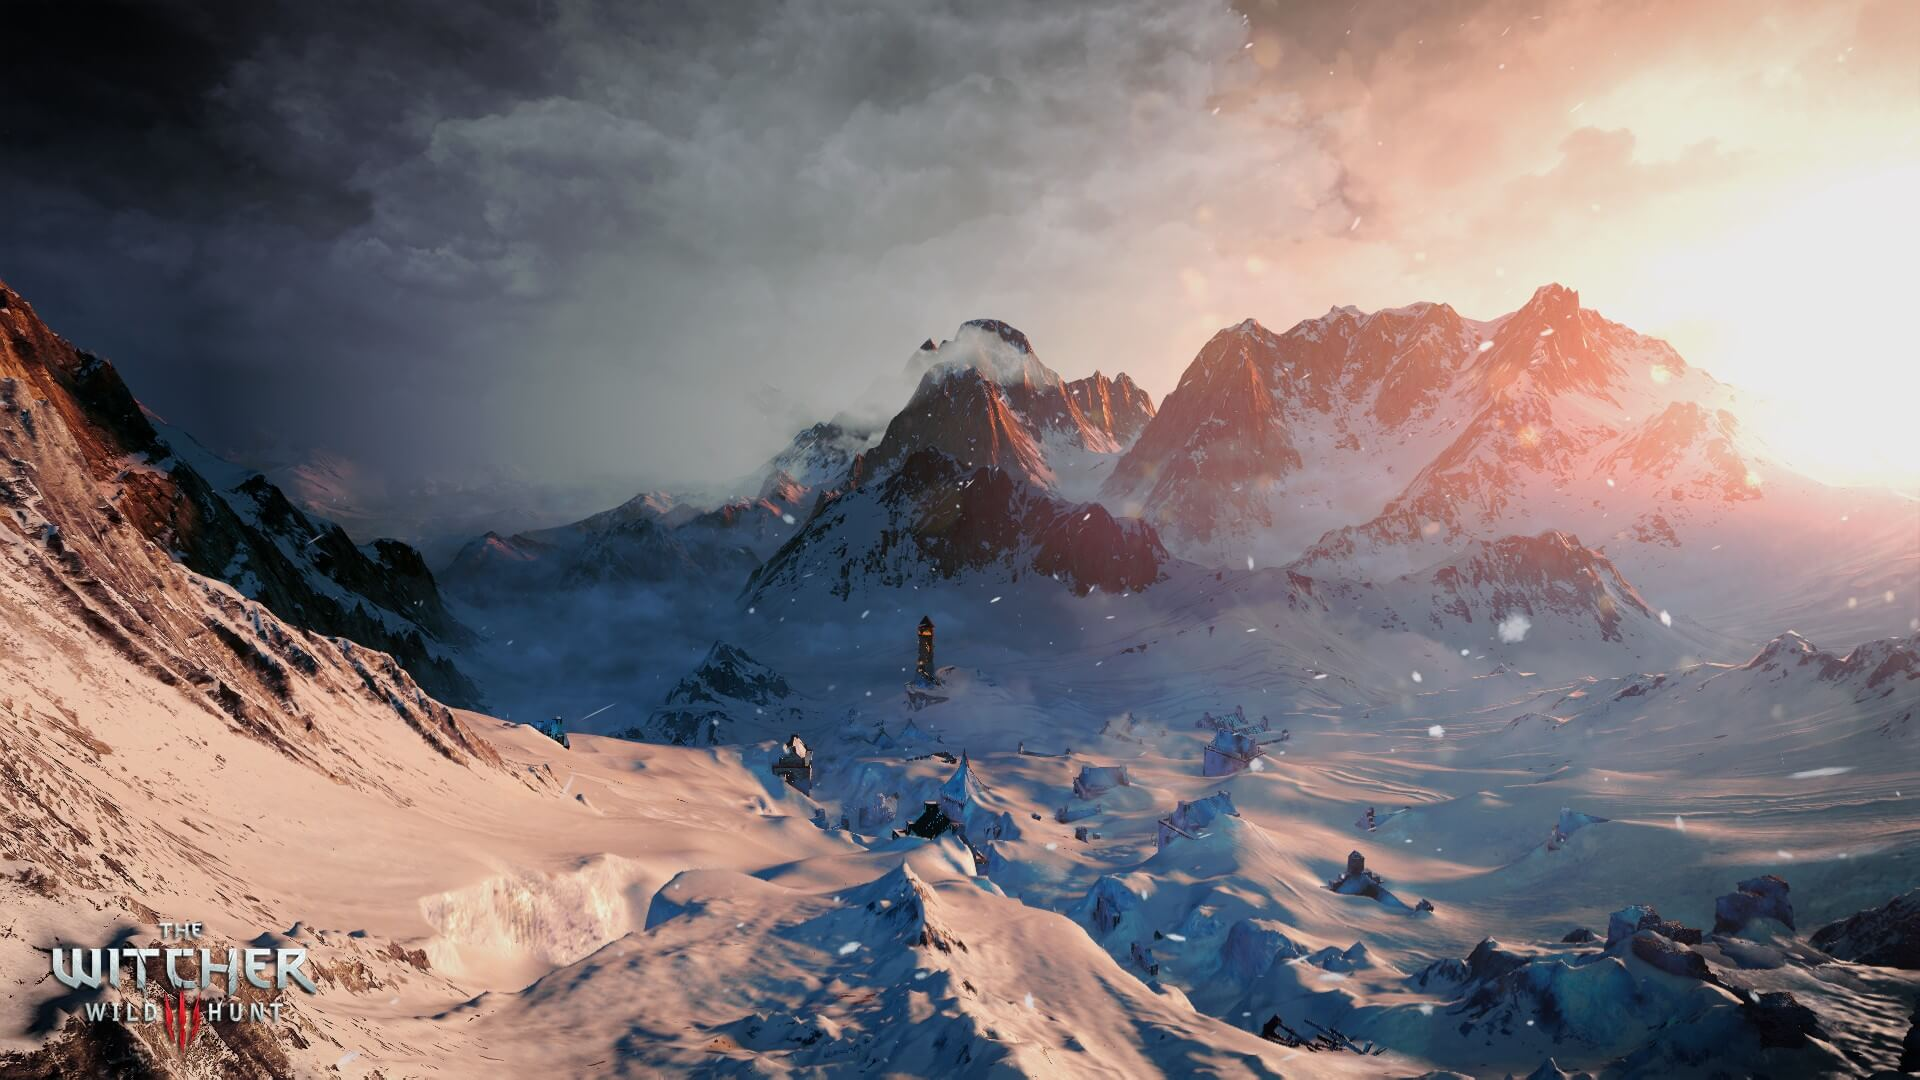 The Witcher 3: Wild Hunt Snow Environment Screenshot